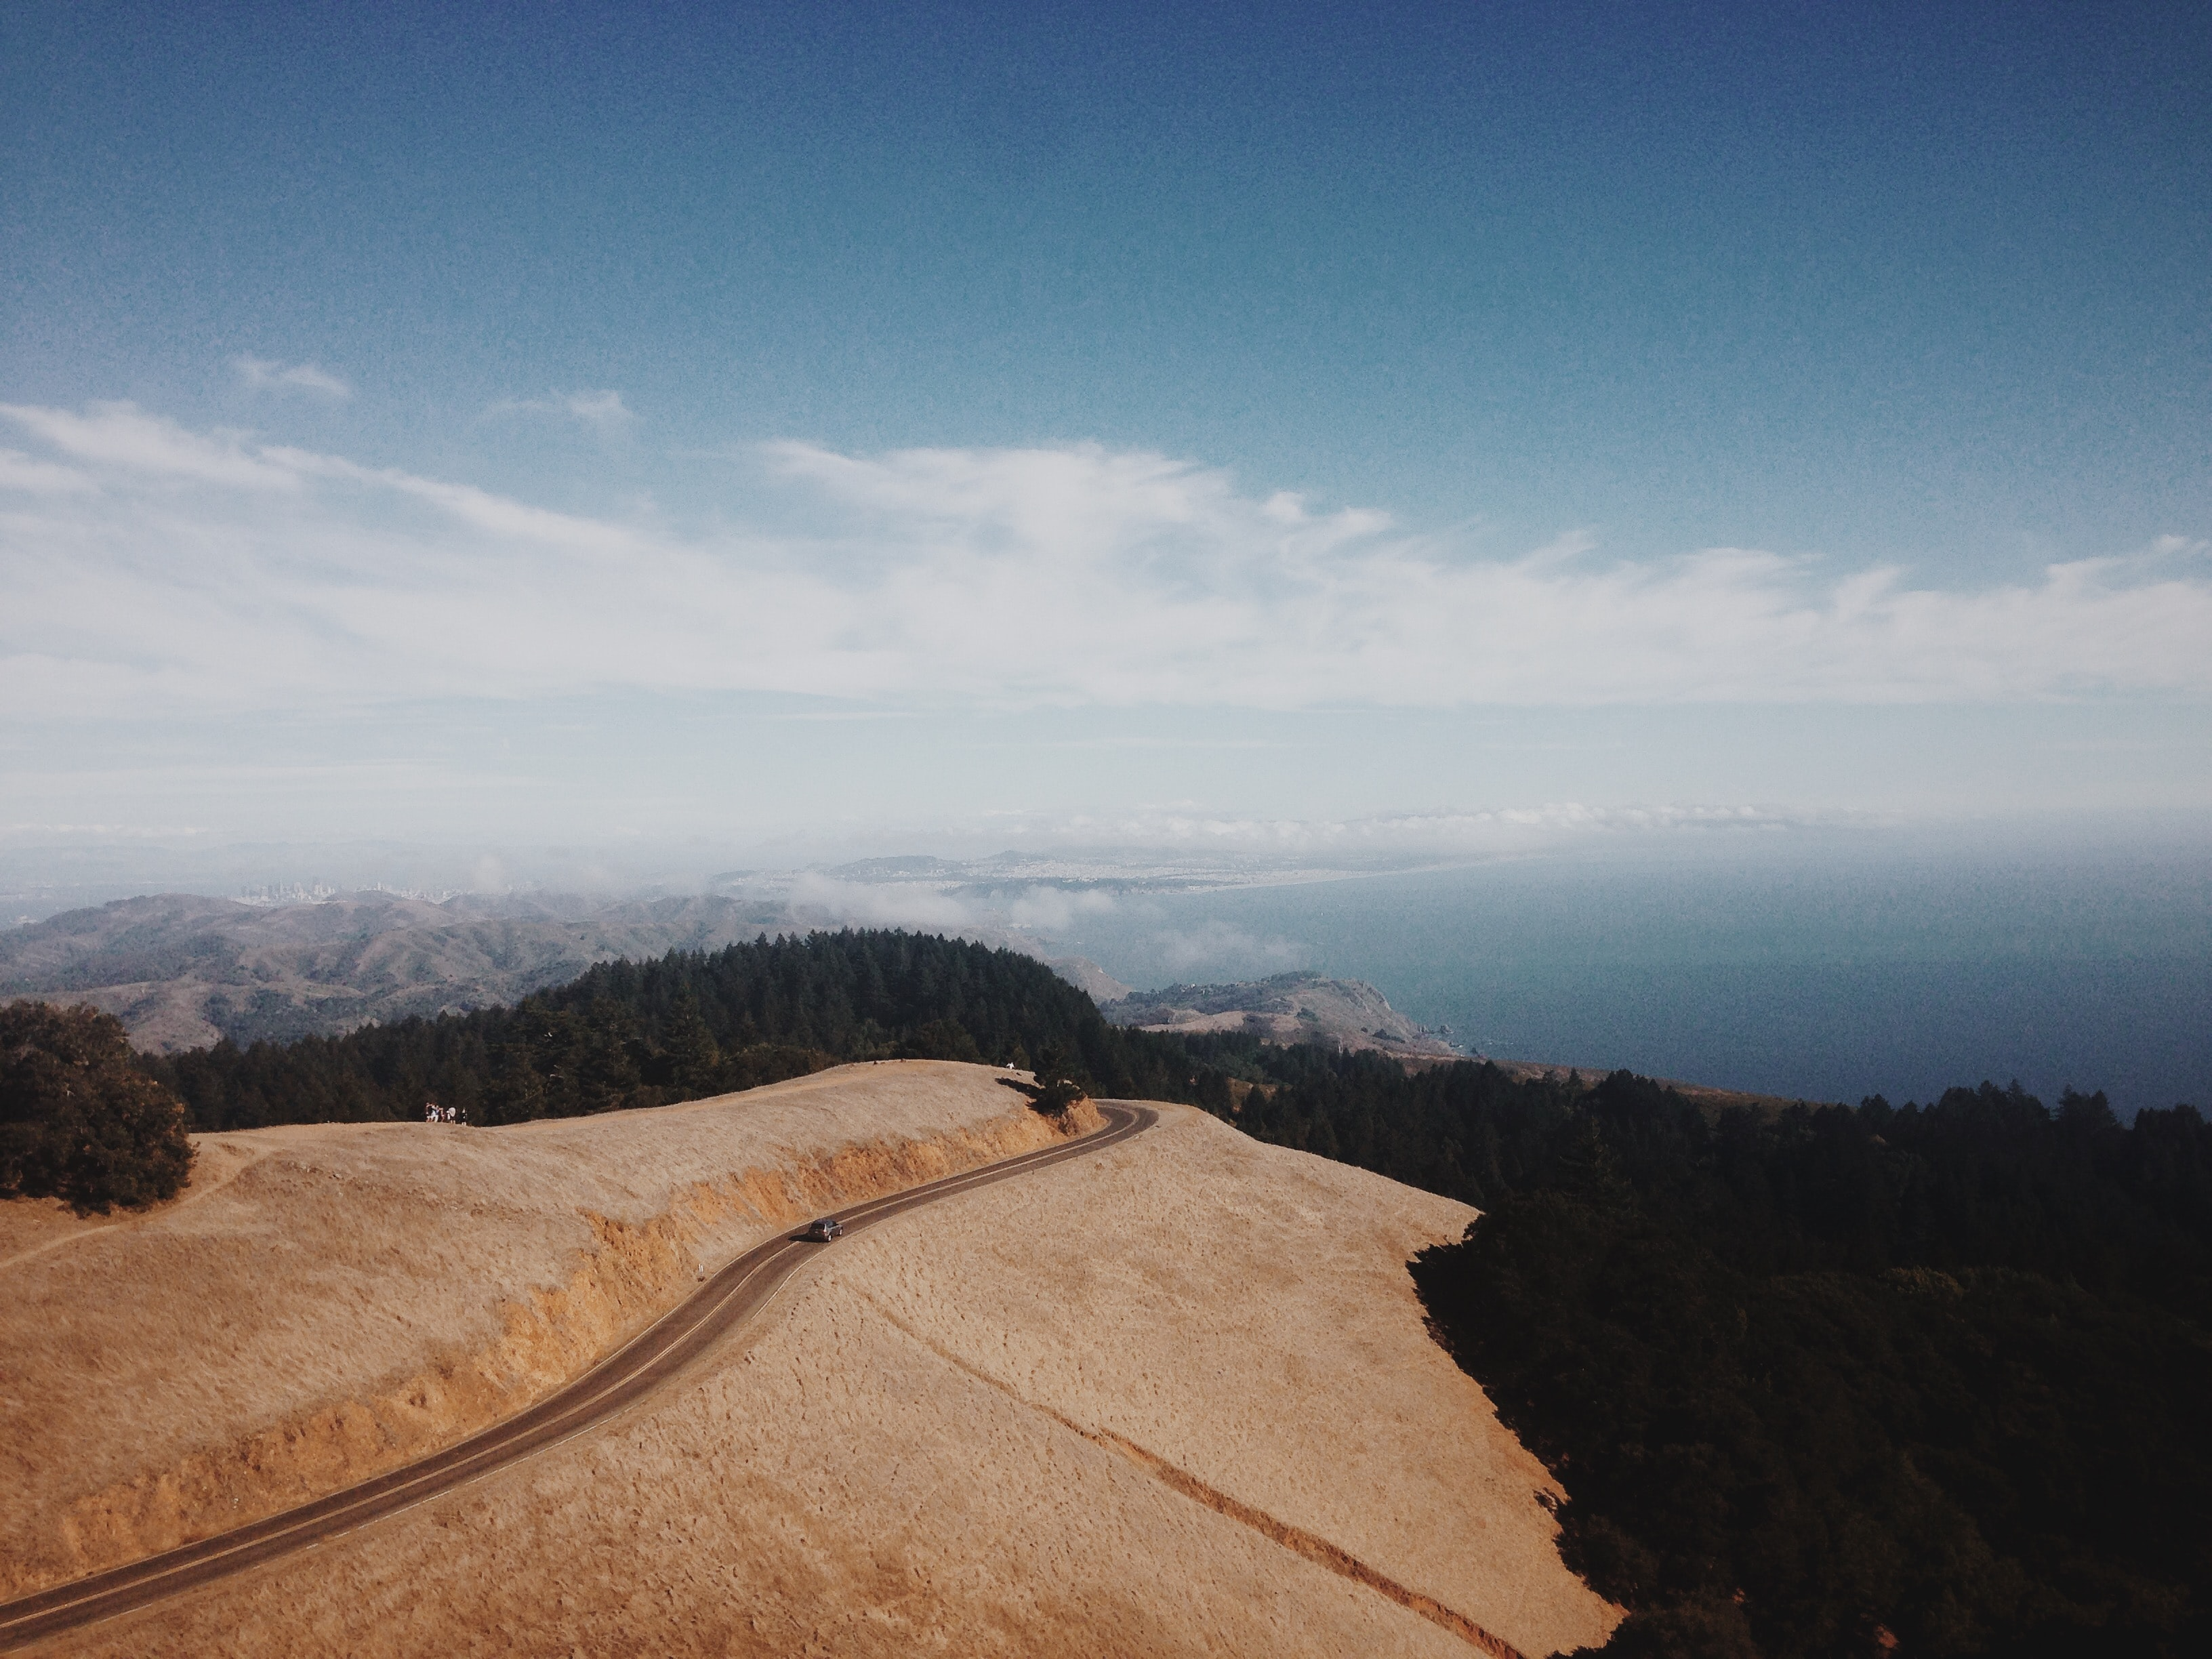 Long panoramic shot of forest highway and hillside with beautiful landscape at Mount Tamalpais